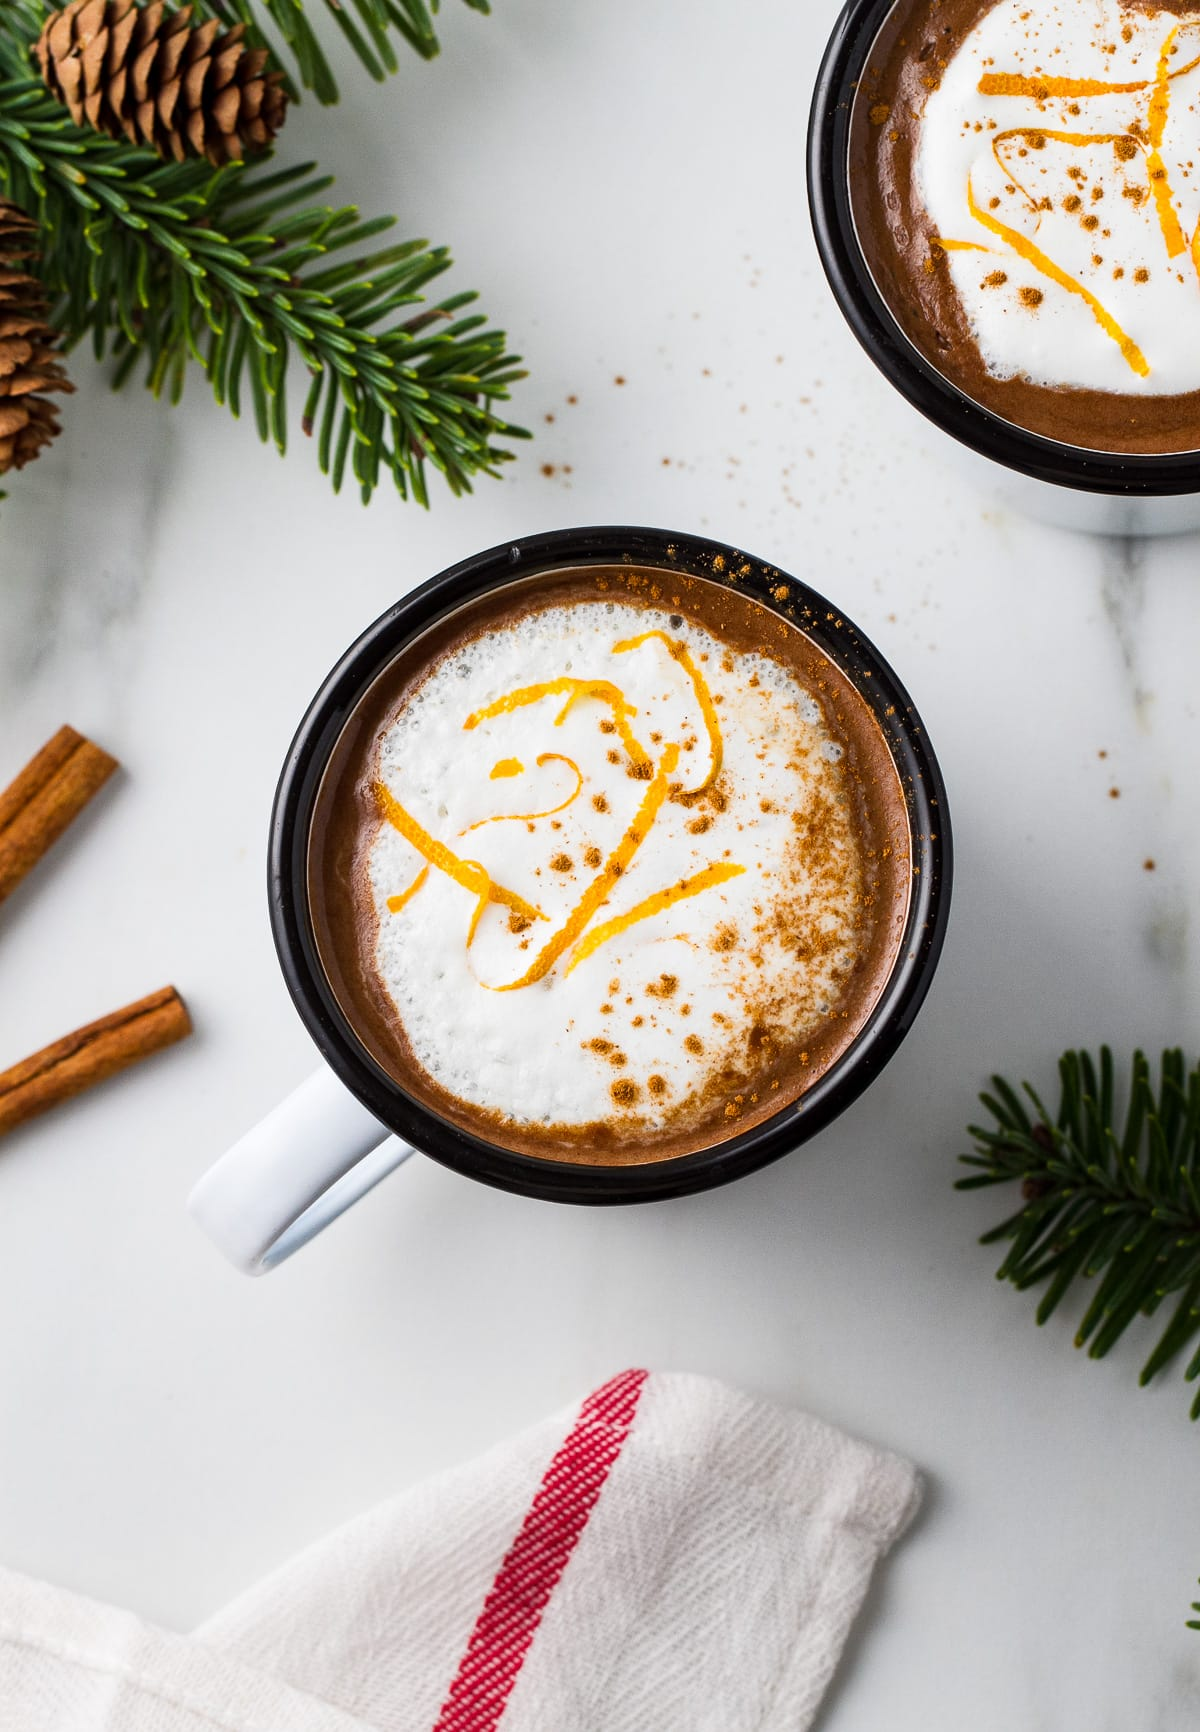 top down view of a orange hot cocoa in a white mug with black rim and surrounded by items.